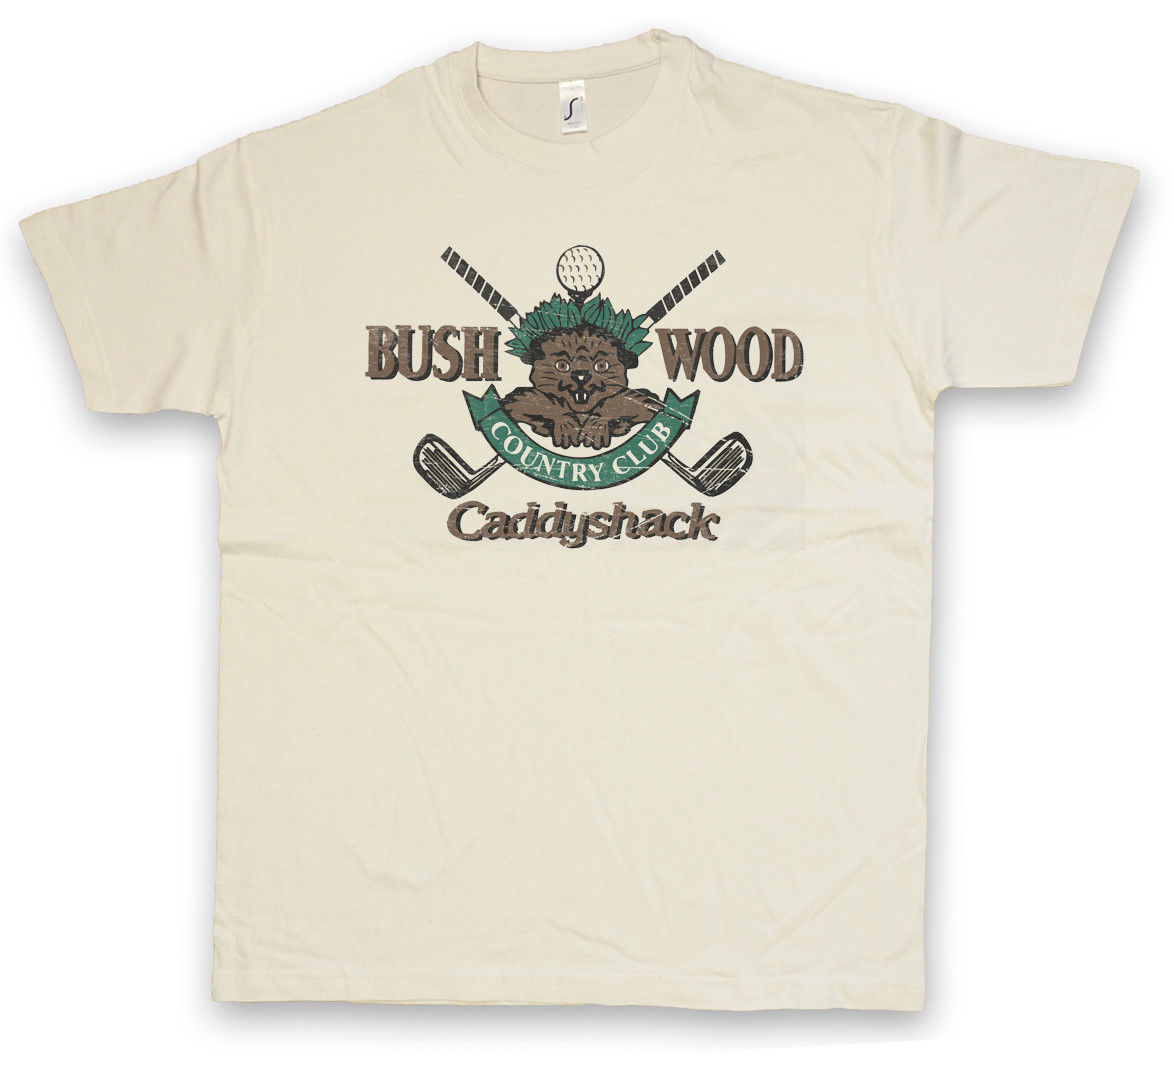 BUSHWOOD COUNTRY CLUB I T-SHIRT Caddyshack Sign Insignia Logo Company Golfed Top Quality 2018 New Brand MenS